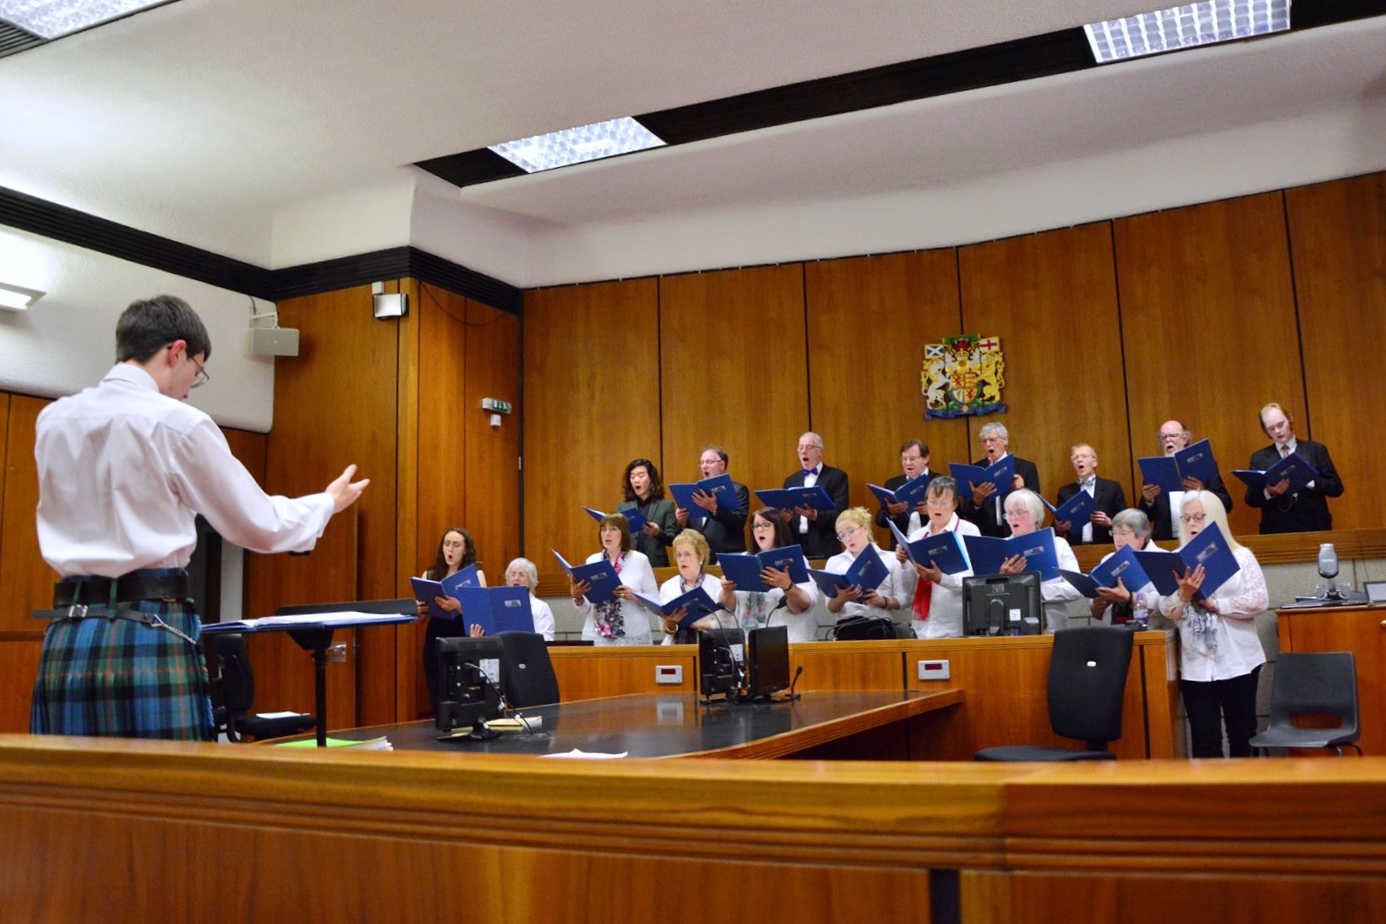 James Campbell directing the singers of Ugie Voices in Peterhead Sheriff Court